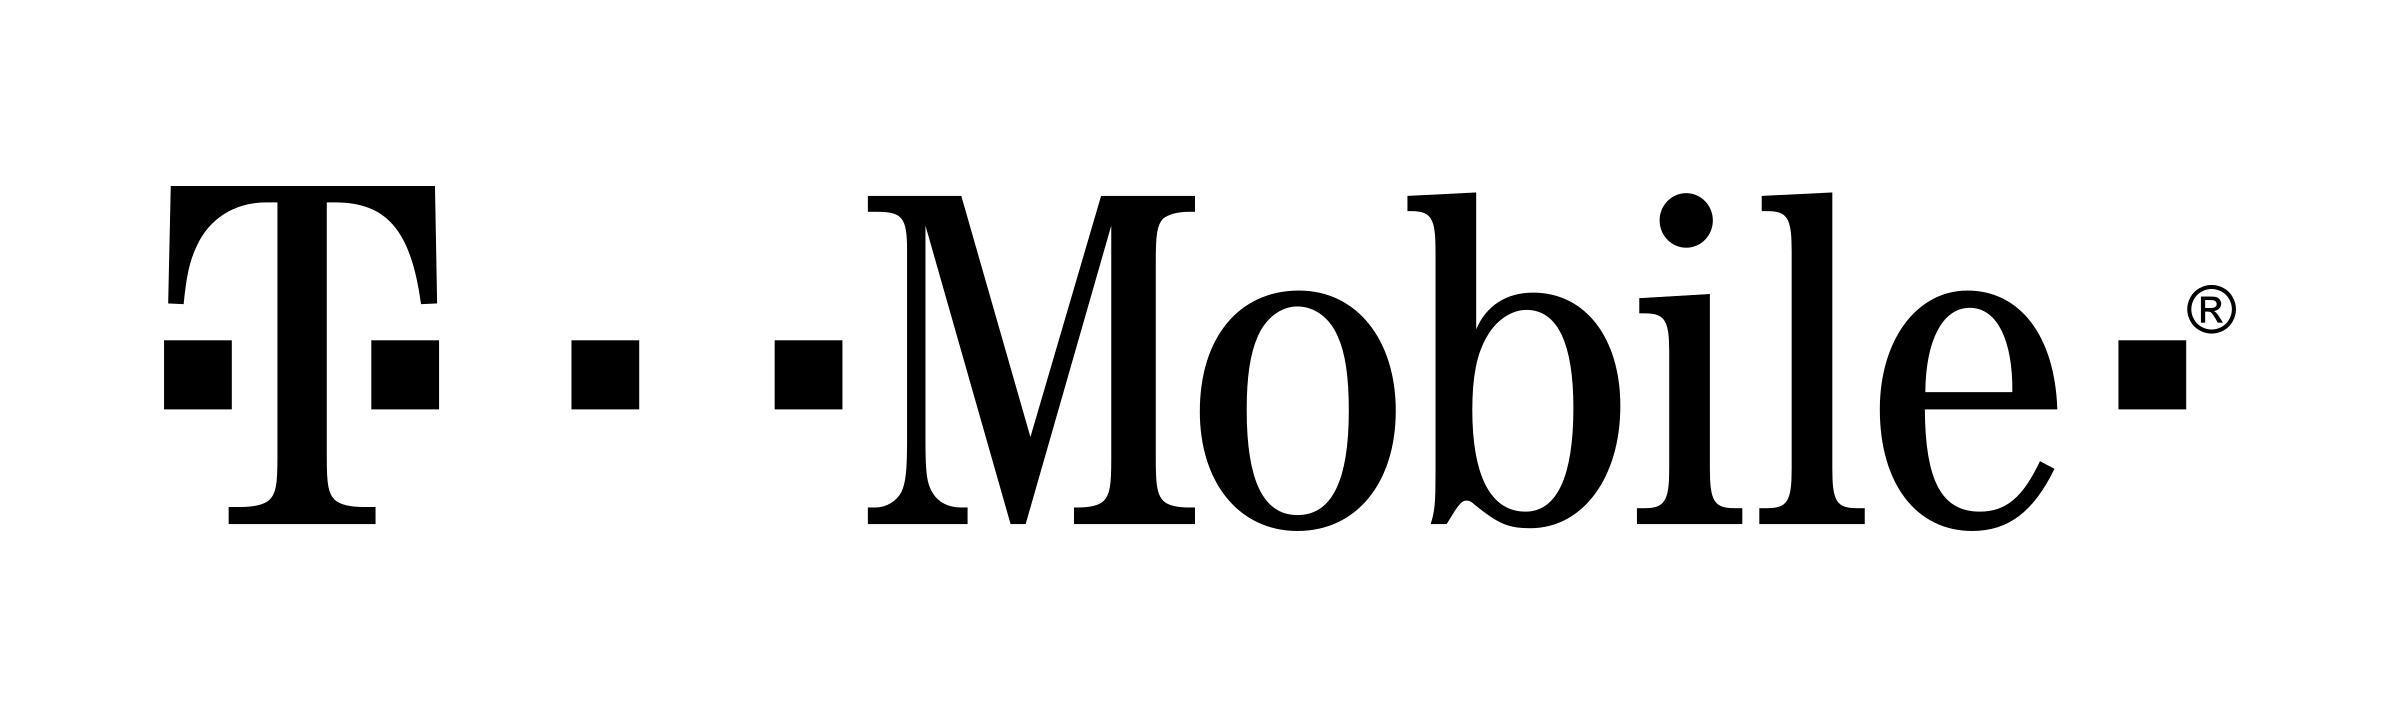 t-mobile-logo-black-and-white.png